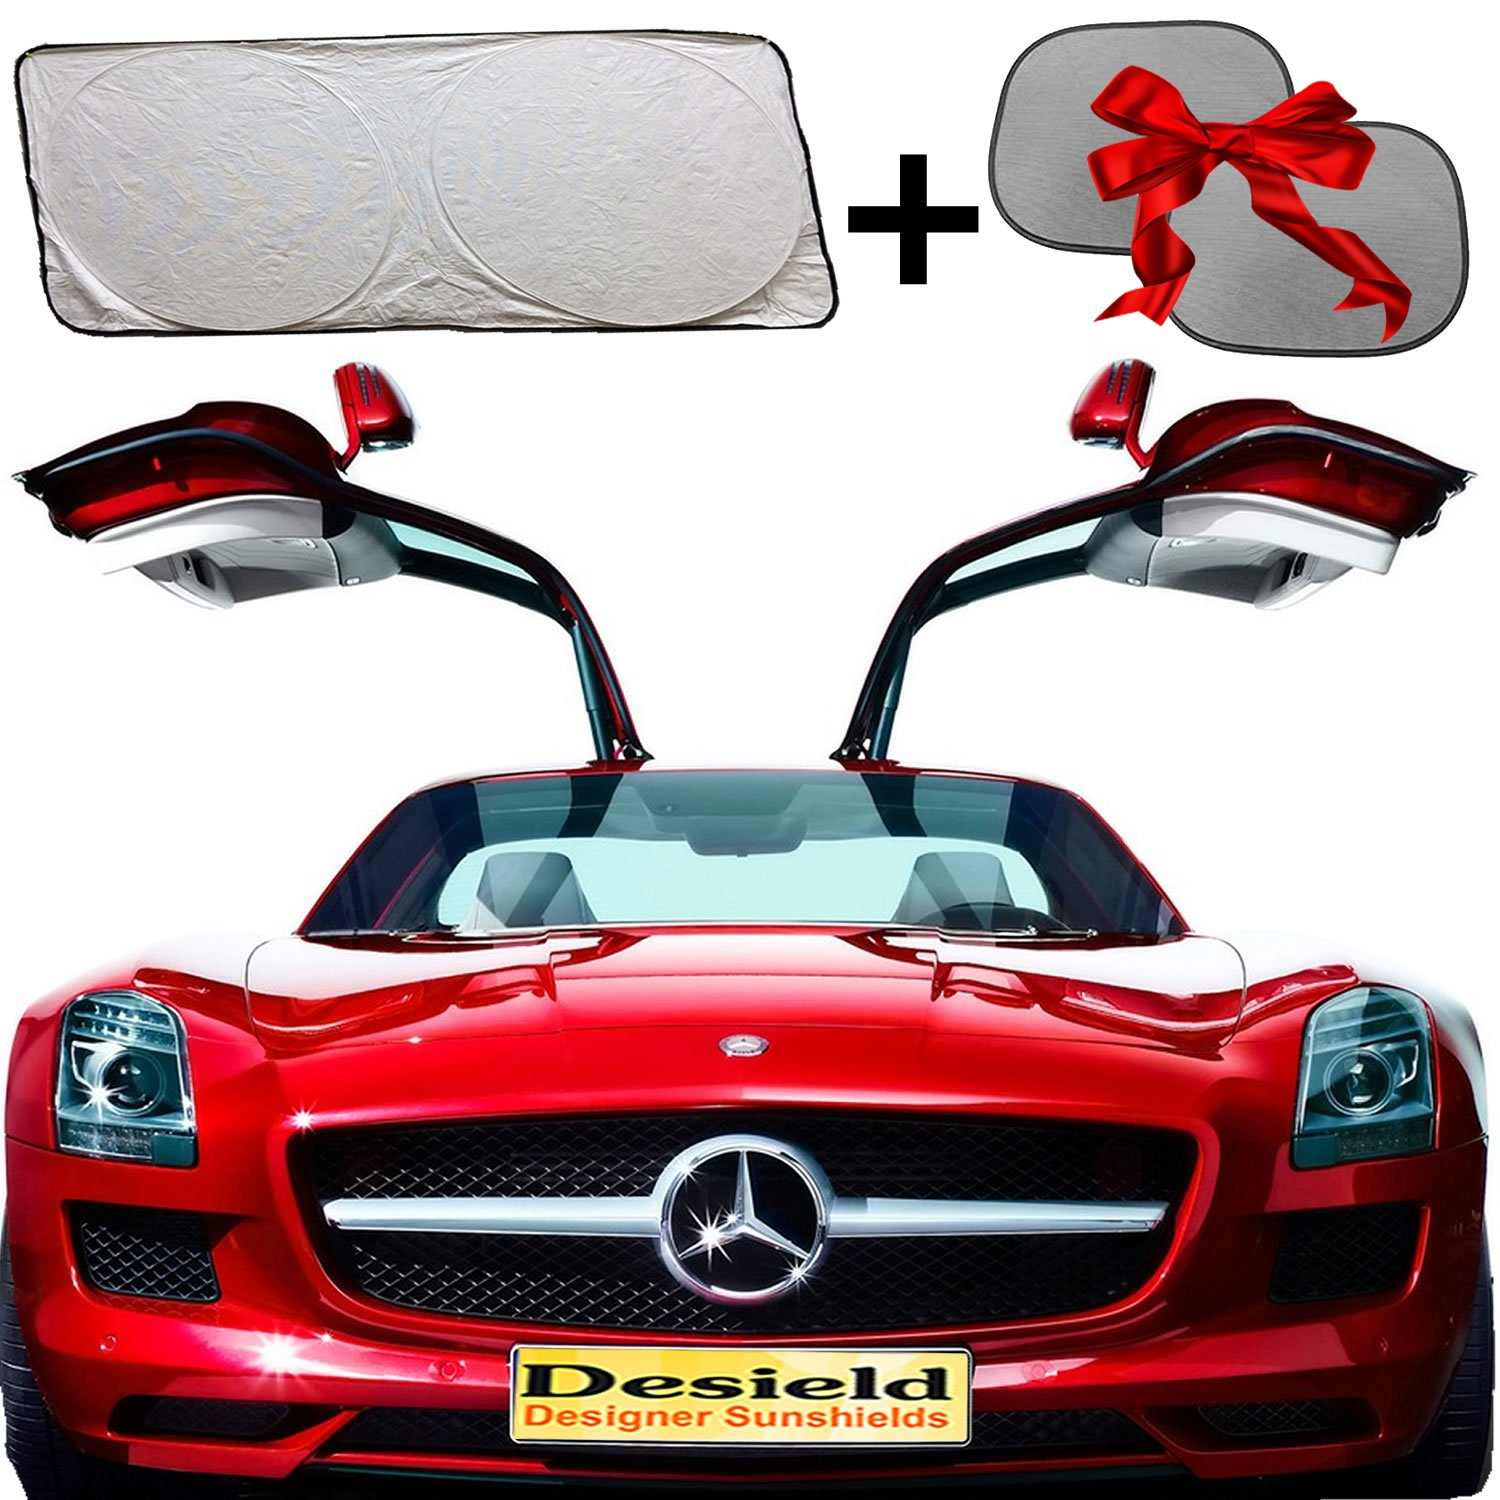 Premium Quality Solar Car Windshield Sunshade Sunshield Unbreakable TYVEK 2 FREE Bonus Side Shades Perfect for kids // Children Jumbo Size 60/'/' by 32/'/' Kingdom Holdings 99/% Sun Heat /& UV Rays Protection